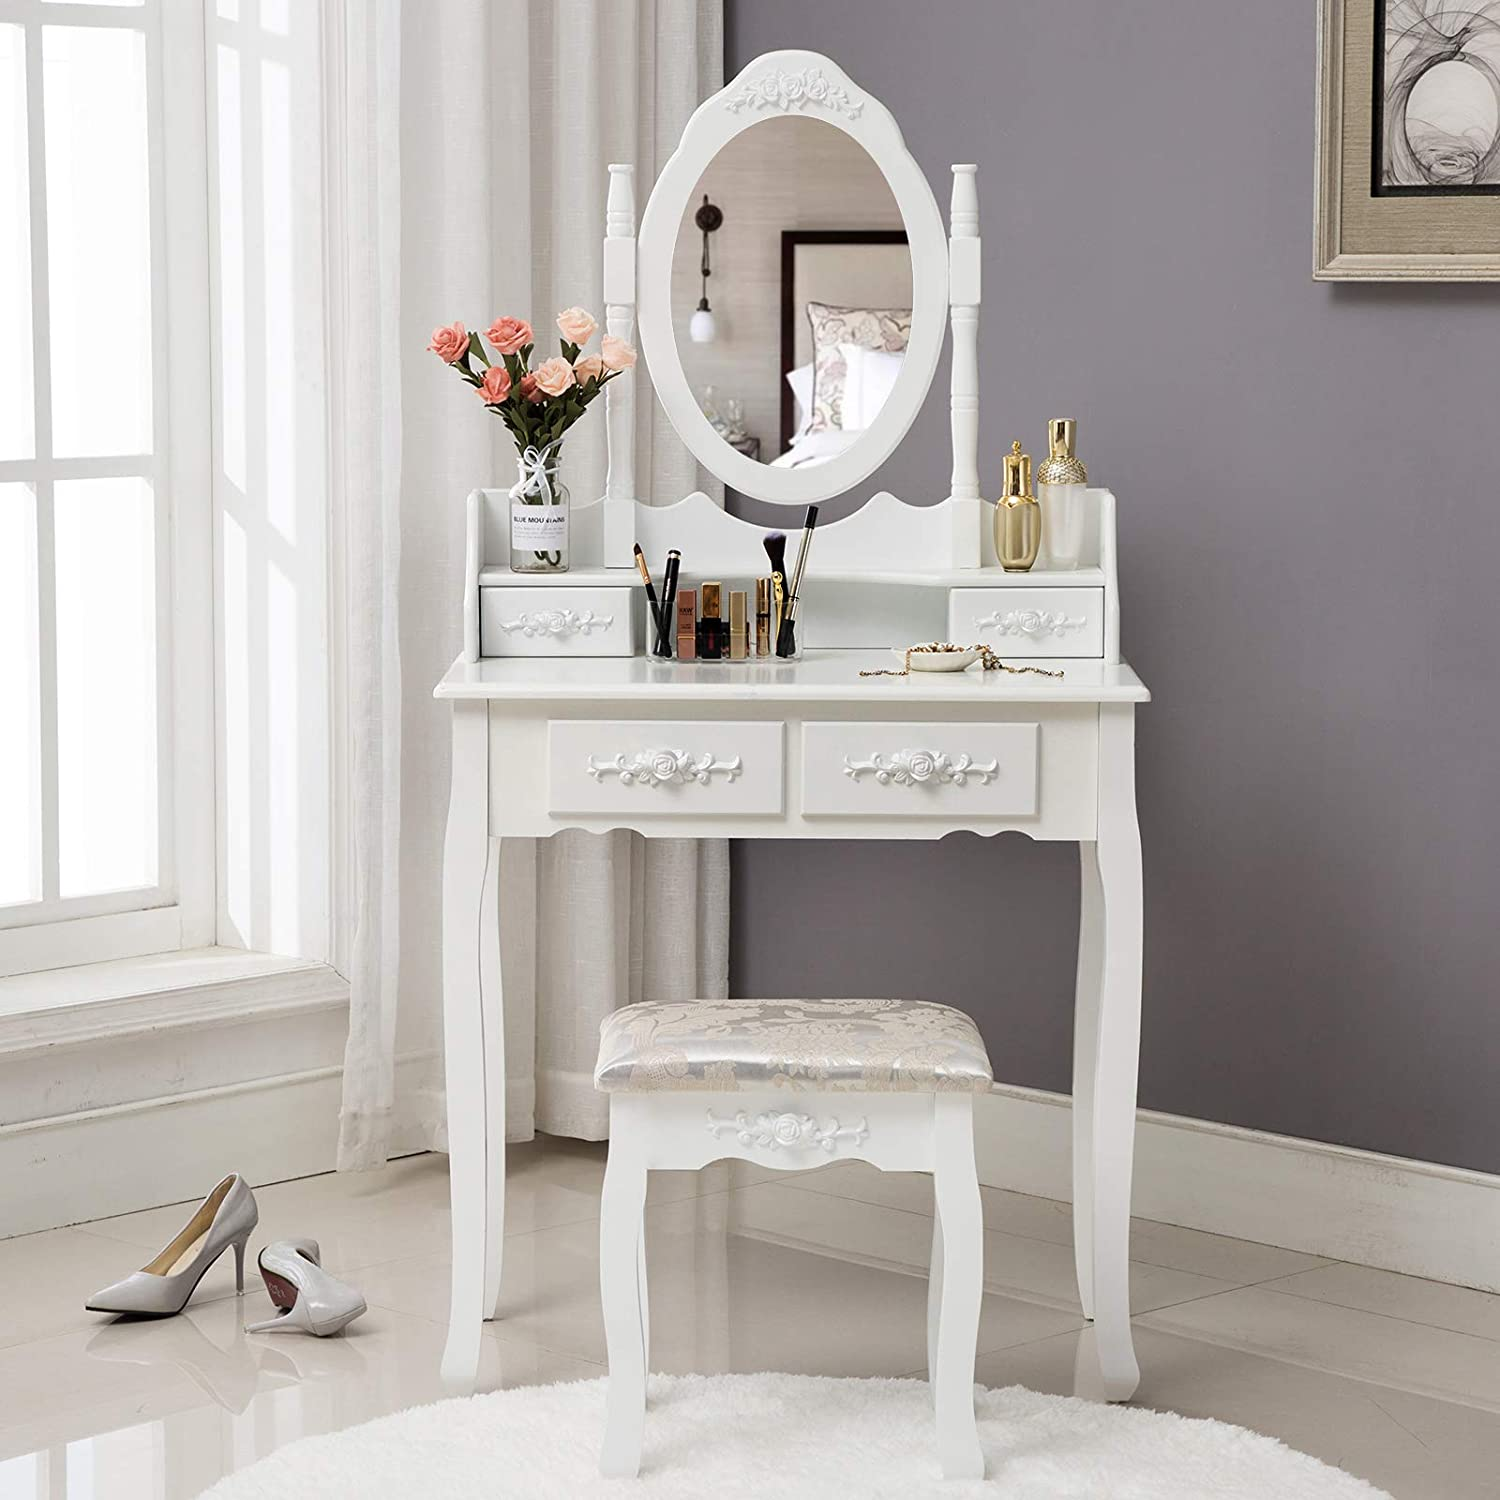 HONBAY Makeup Vanity Table Set and Cushioned Stool with Oval Mirror, 4 Drawers Dressing Table White